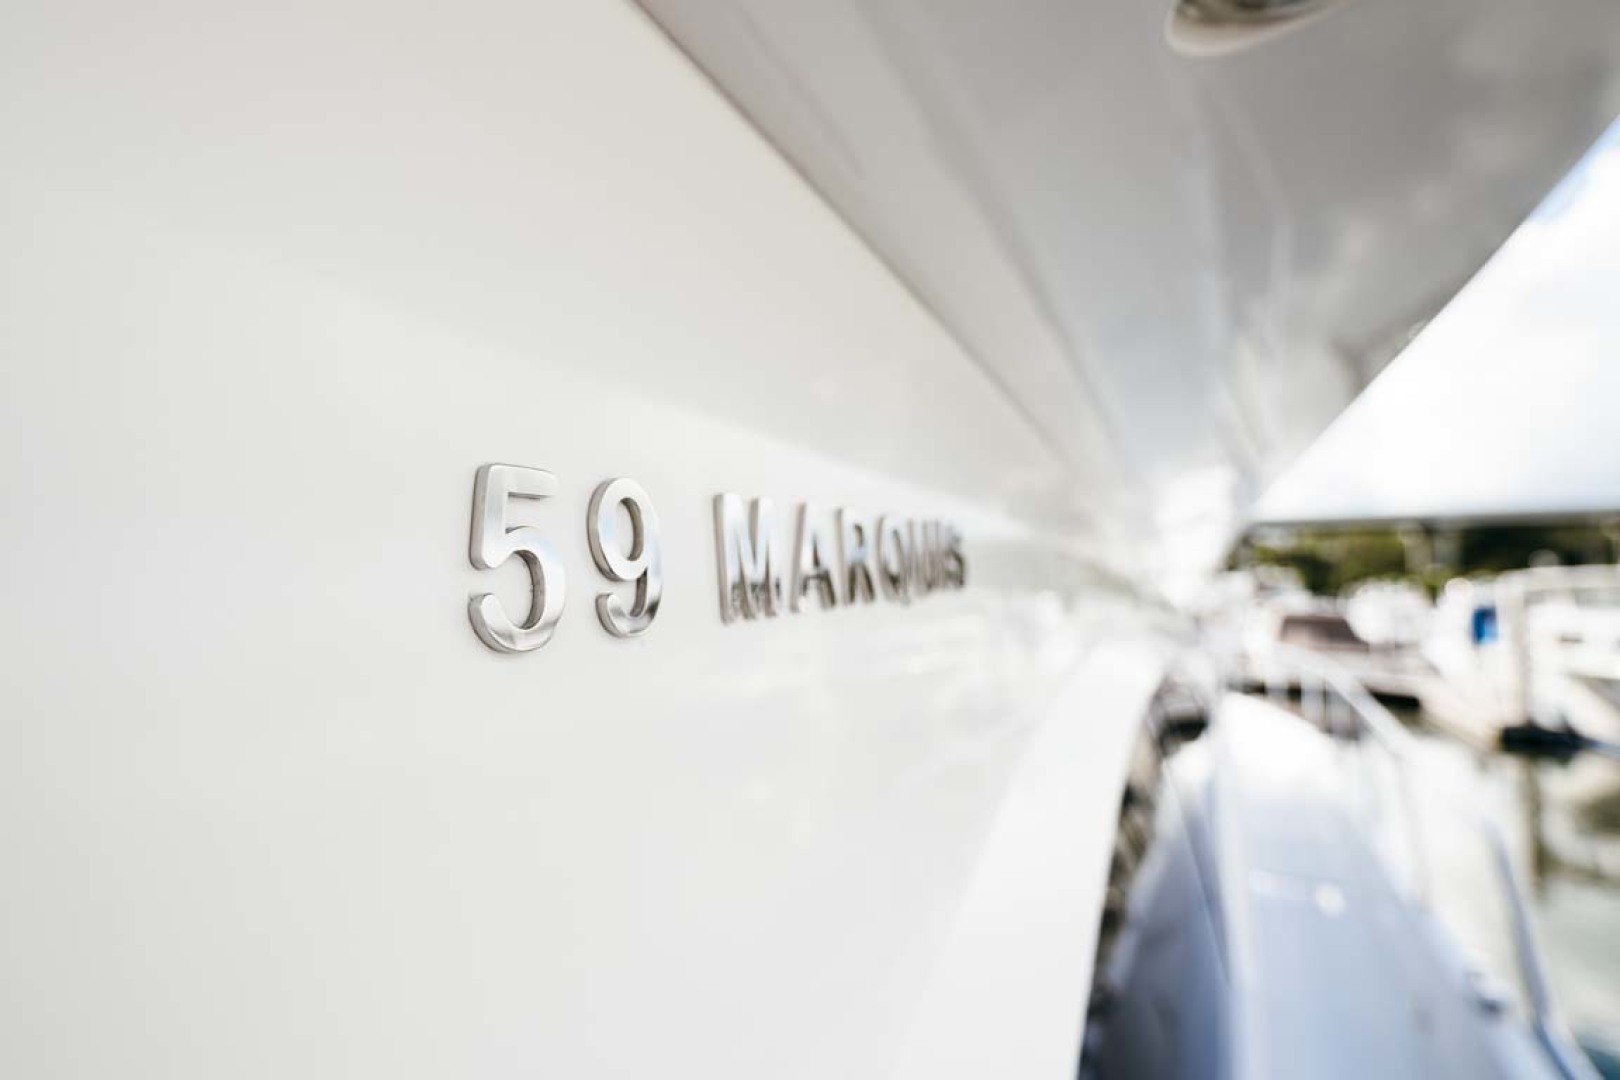 Marquis-Flybridge Motor Yacht 2004-Sandy Island Palm Coast-Florida-United States-Stbd Side Deck, Logo-1247854 | Thumbnail